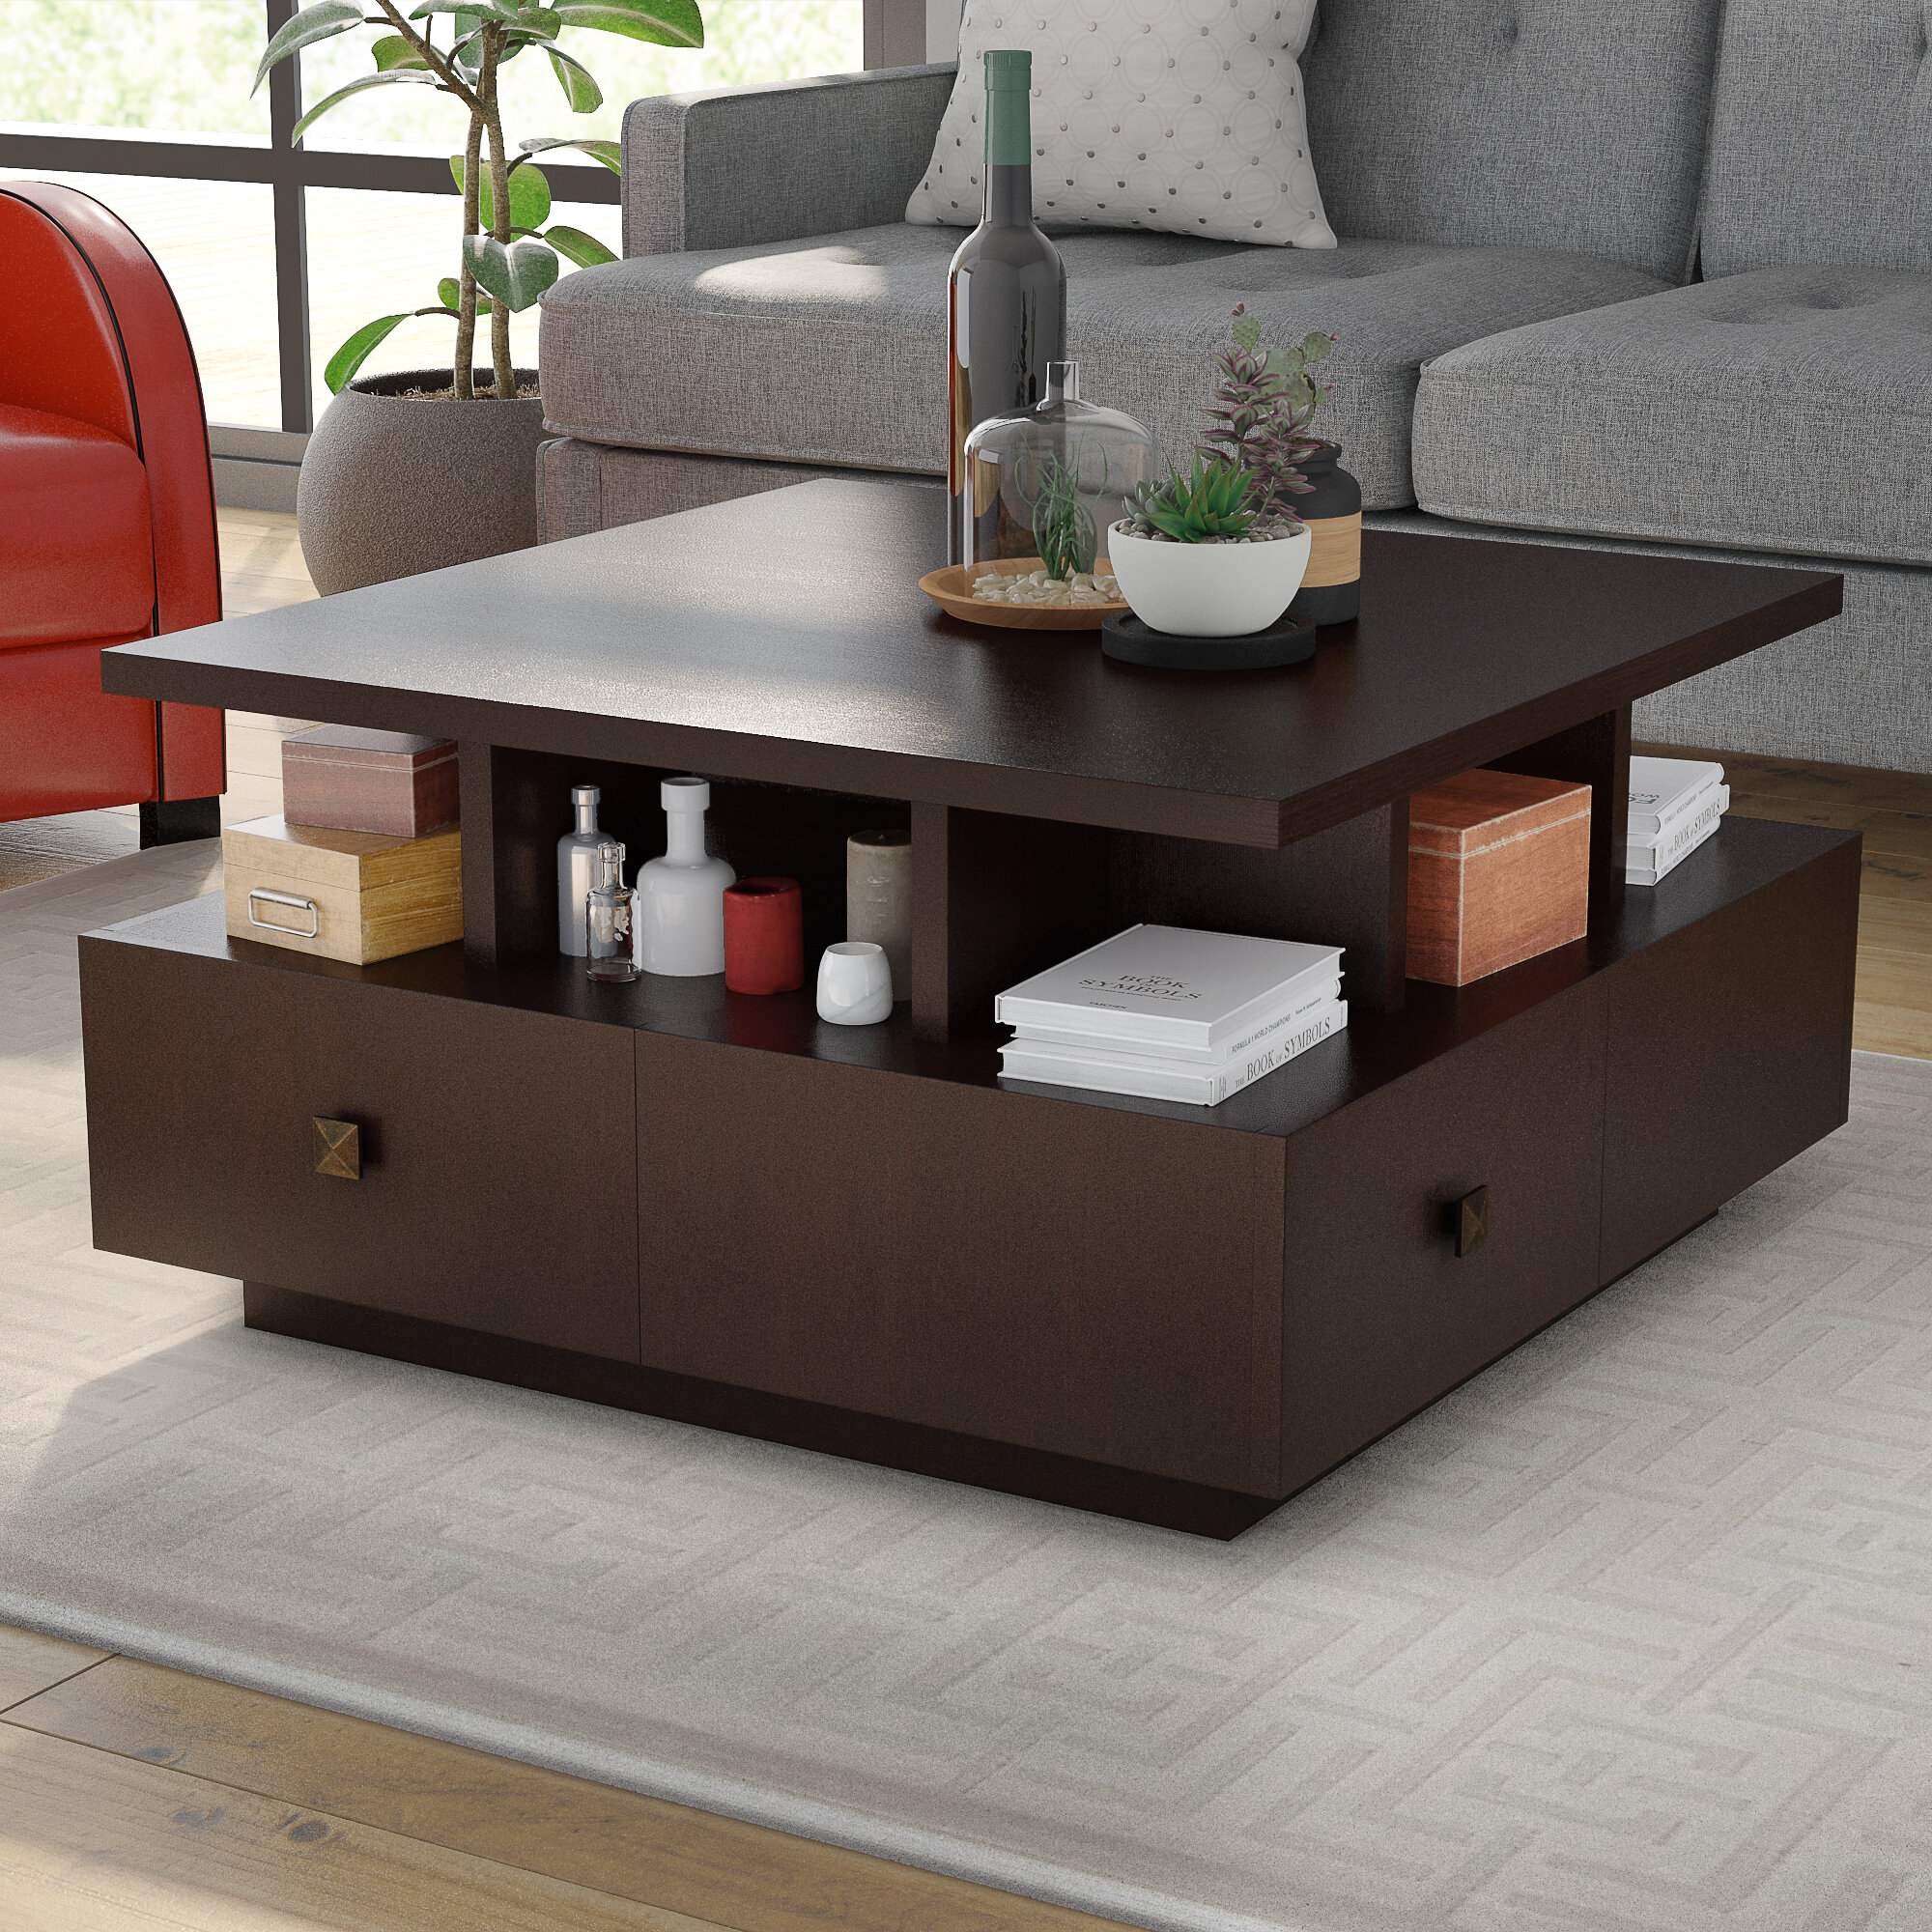 Square Coffee Tables Free Shipping Over 35 Wayfair